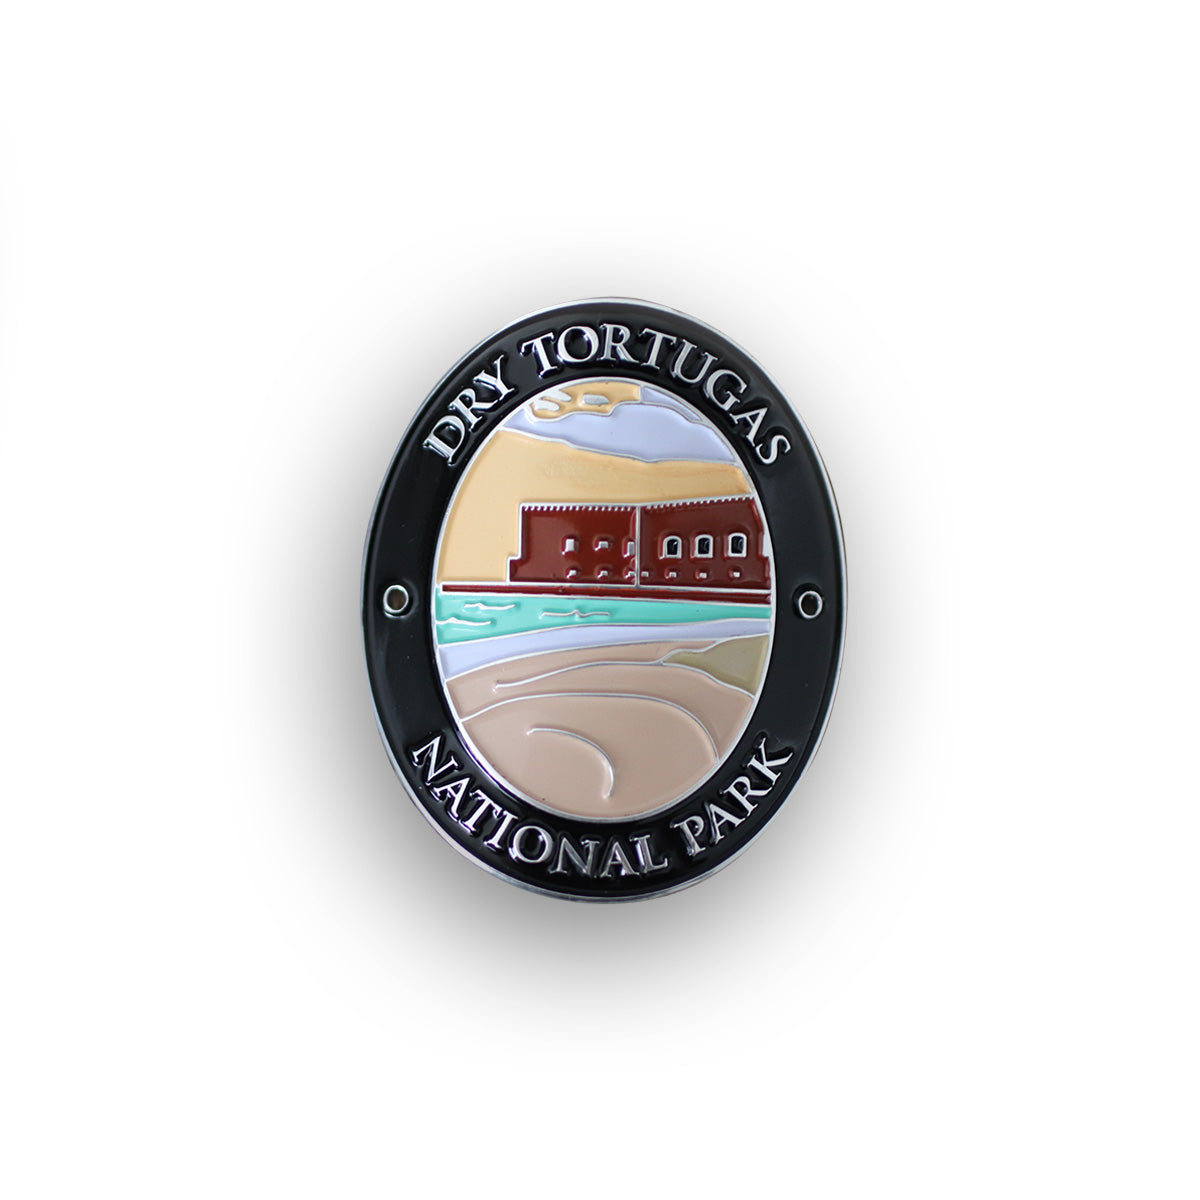 Dry Tortugas National Park Traveler Walking Stick Medallion